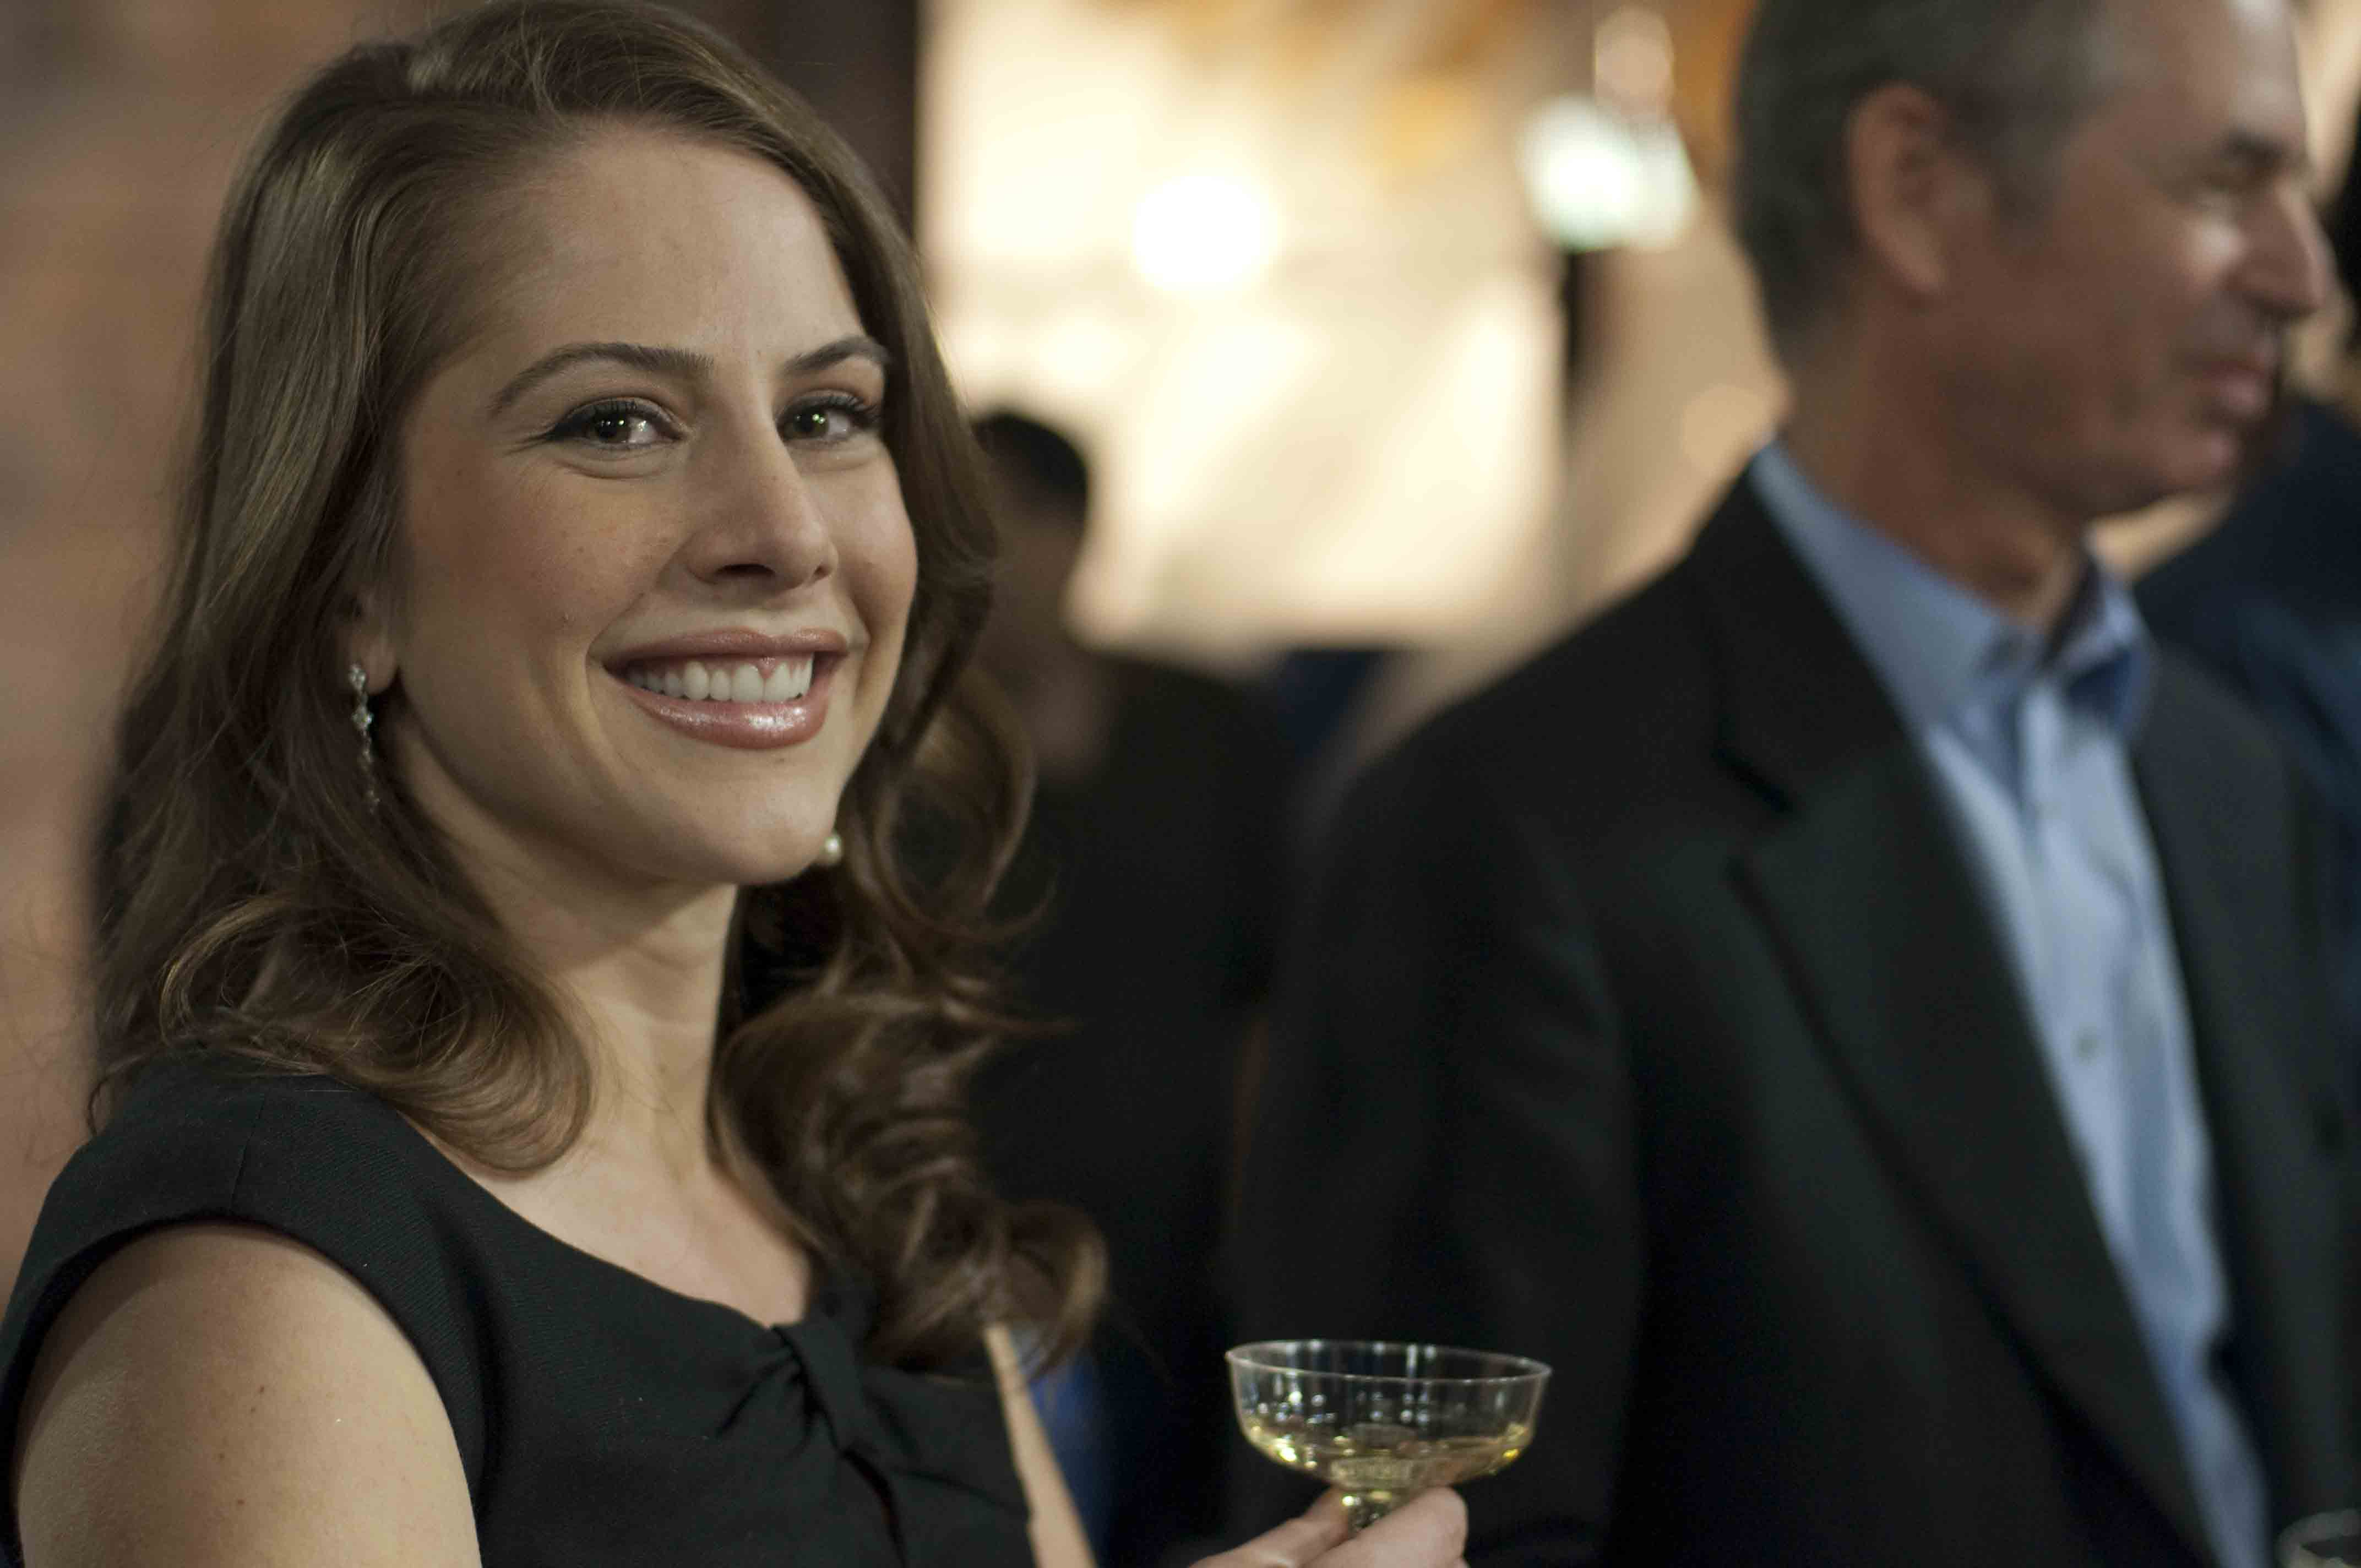 Pictures Of Ana Kasparian